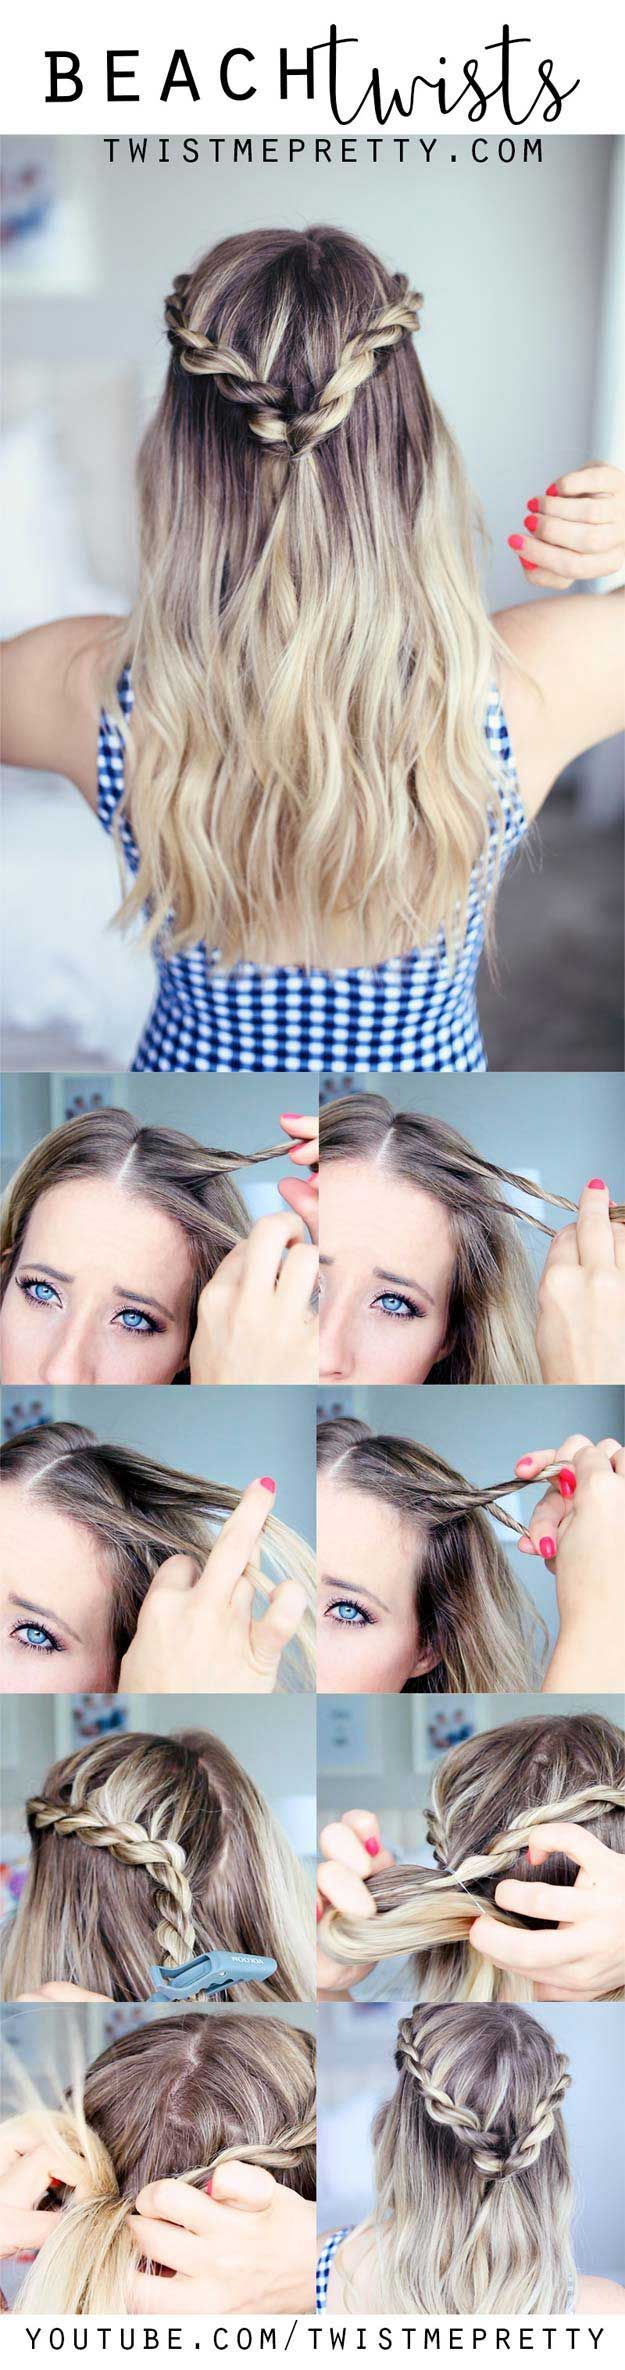 Best Hairstyles for Summer - Cute Summer Twists - Easy and Cute Hair Styles for Long, Medium and Short hair - Whether you have Black or Blonde Hair, Check Out The Best Styles from 2016 and 2017 - Tutorial for Braided Updo, Cute Teen Looks, Casual and Simp